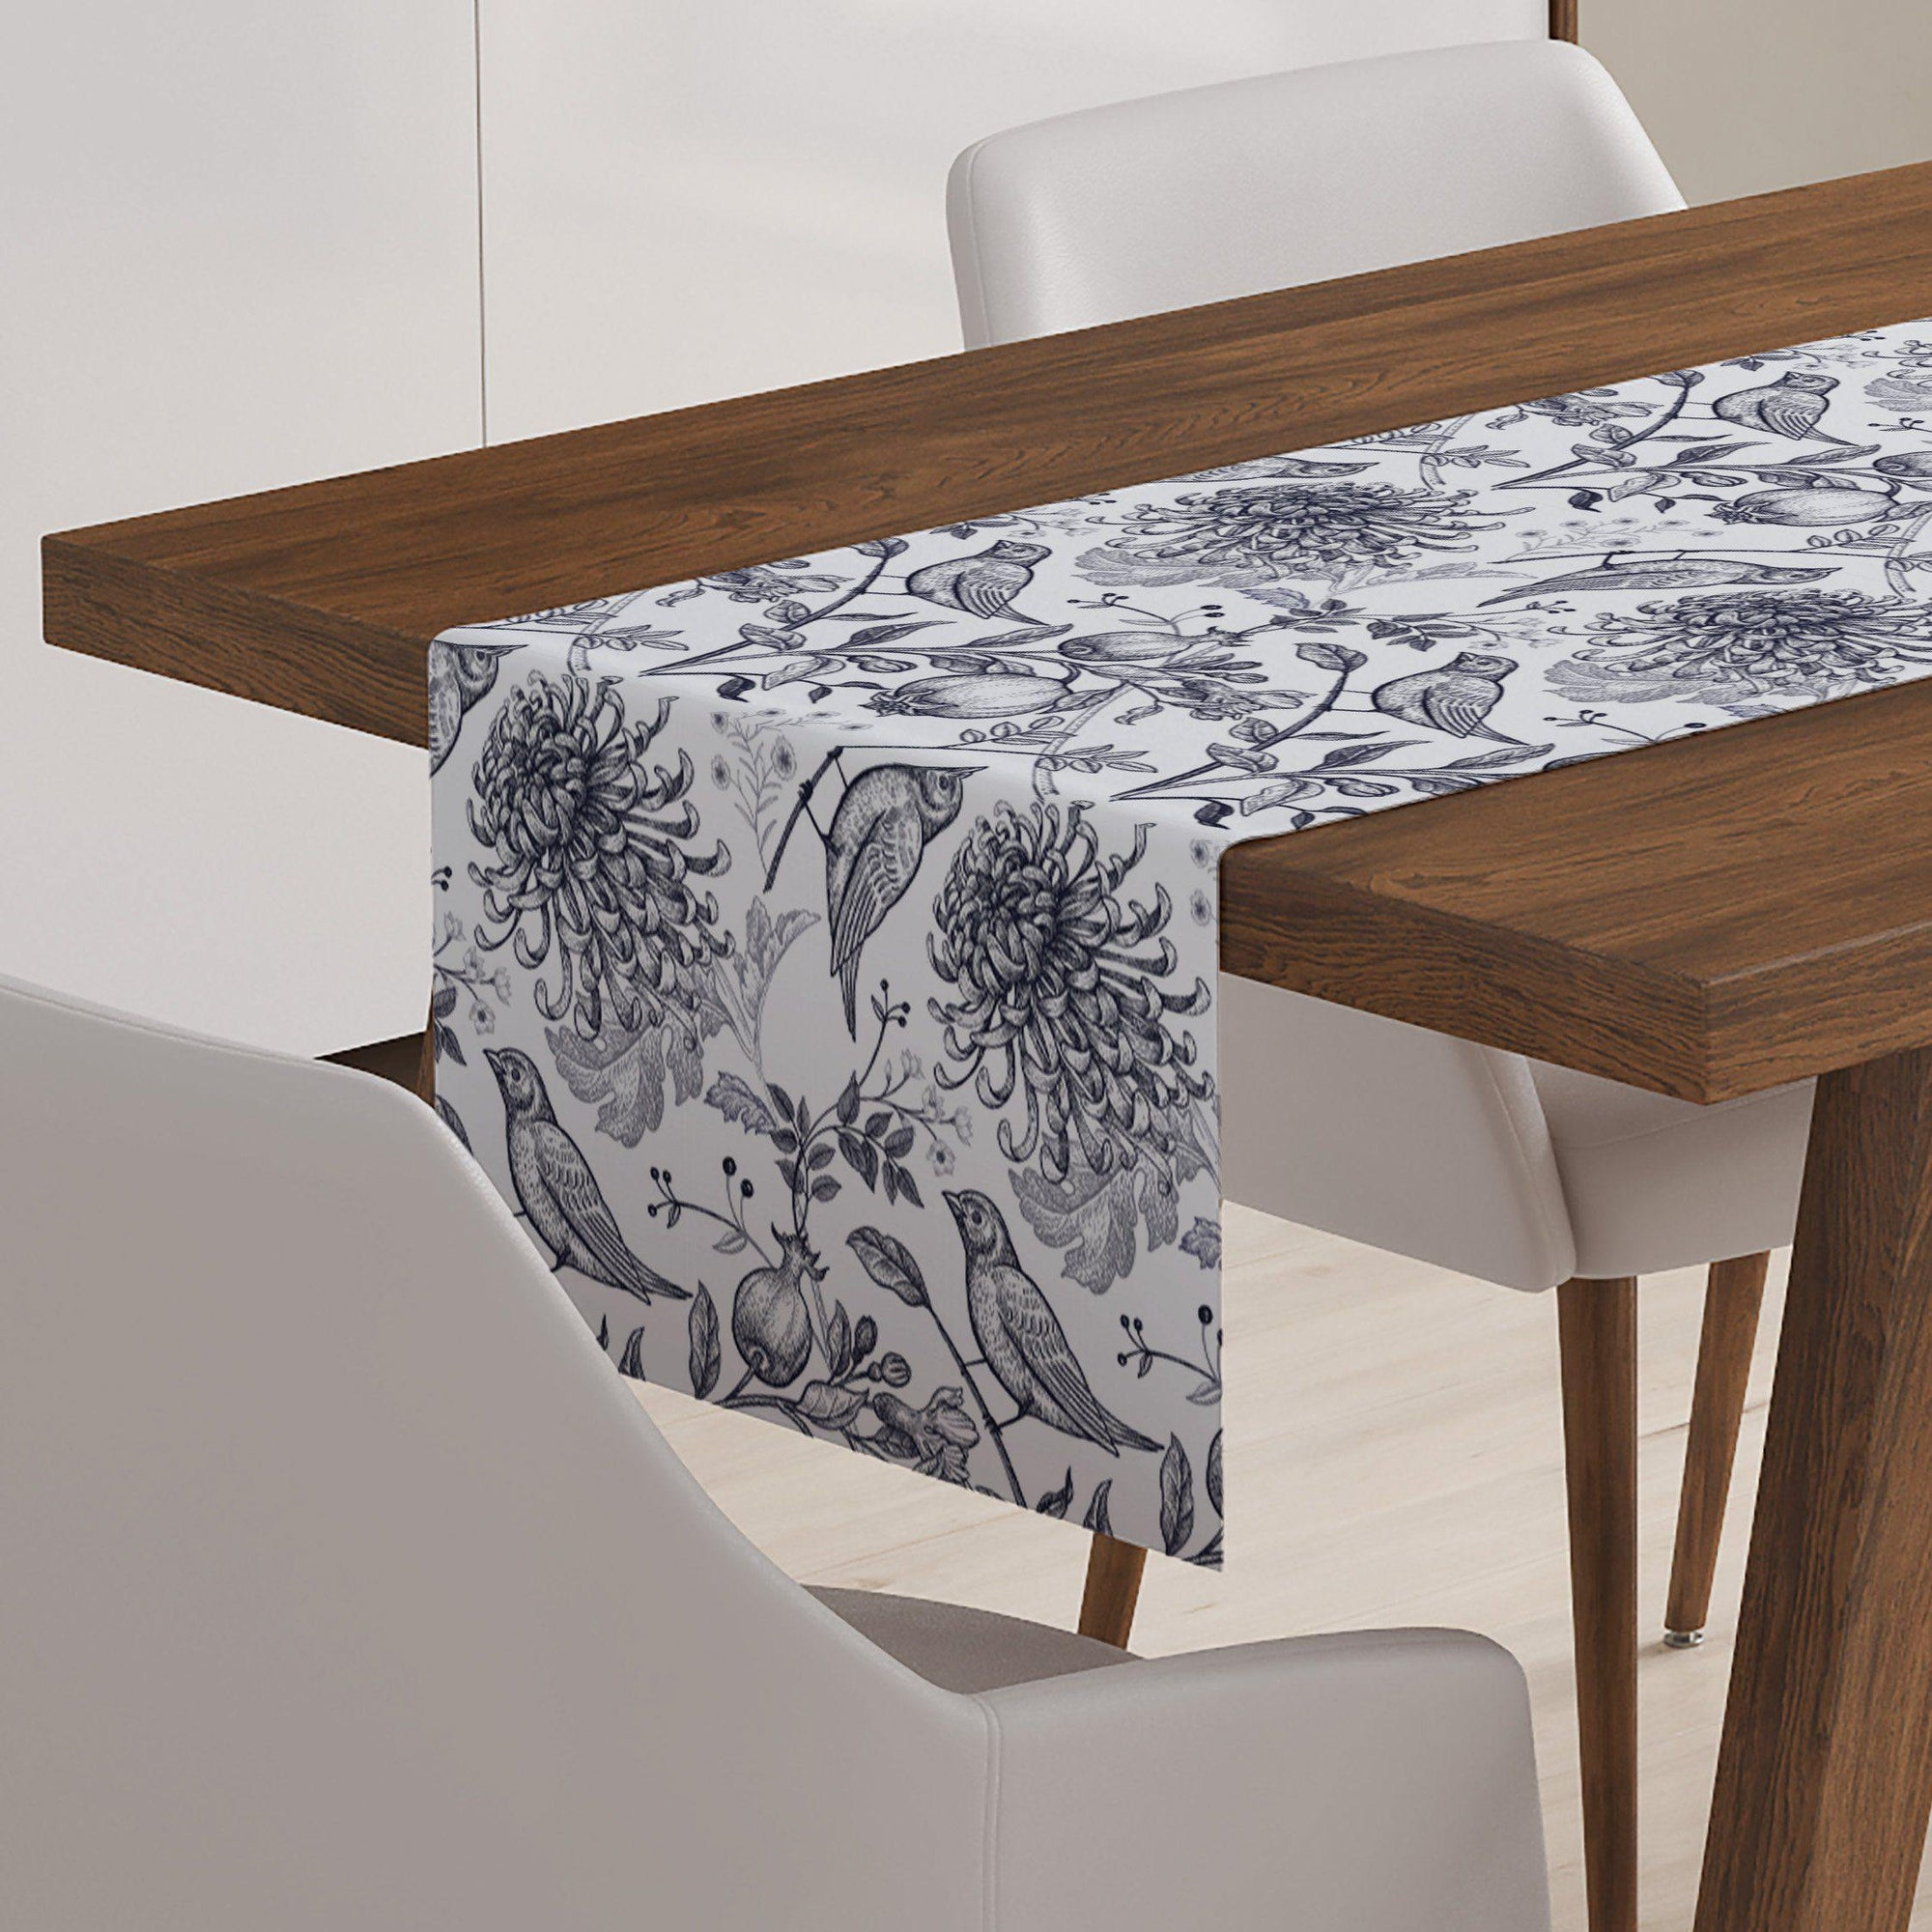 Black Bird Table Runner - Table Runners - W.FRANCIS